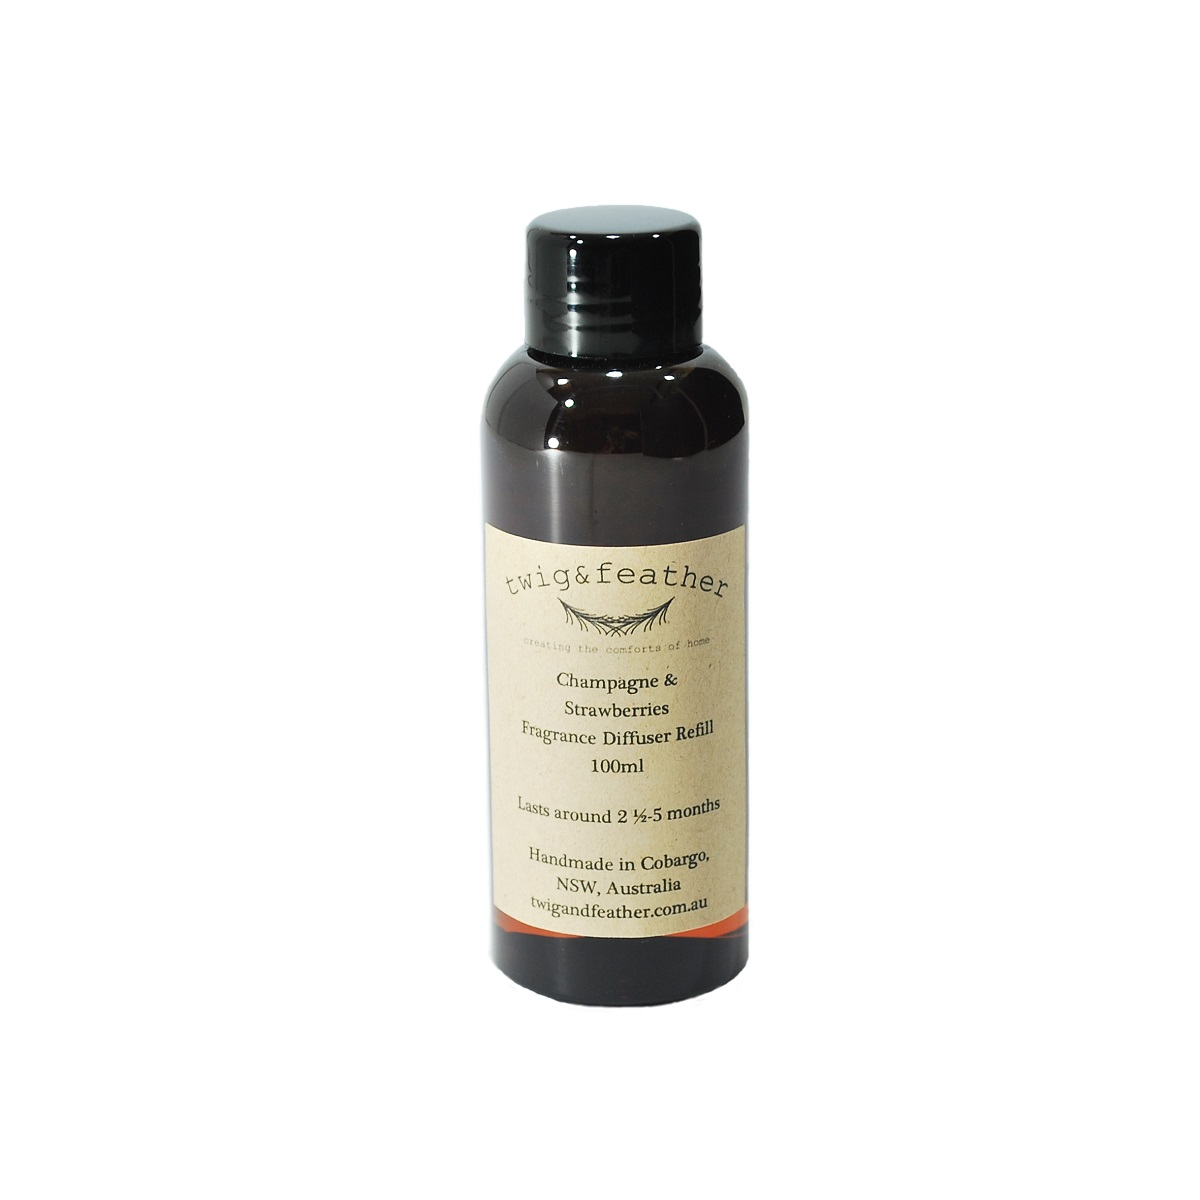 Champagne And Strawberries Fragrance Diffuser Refill